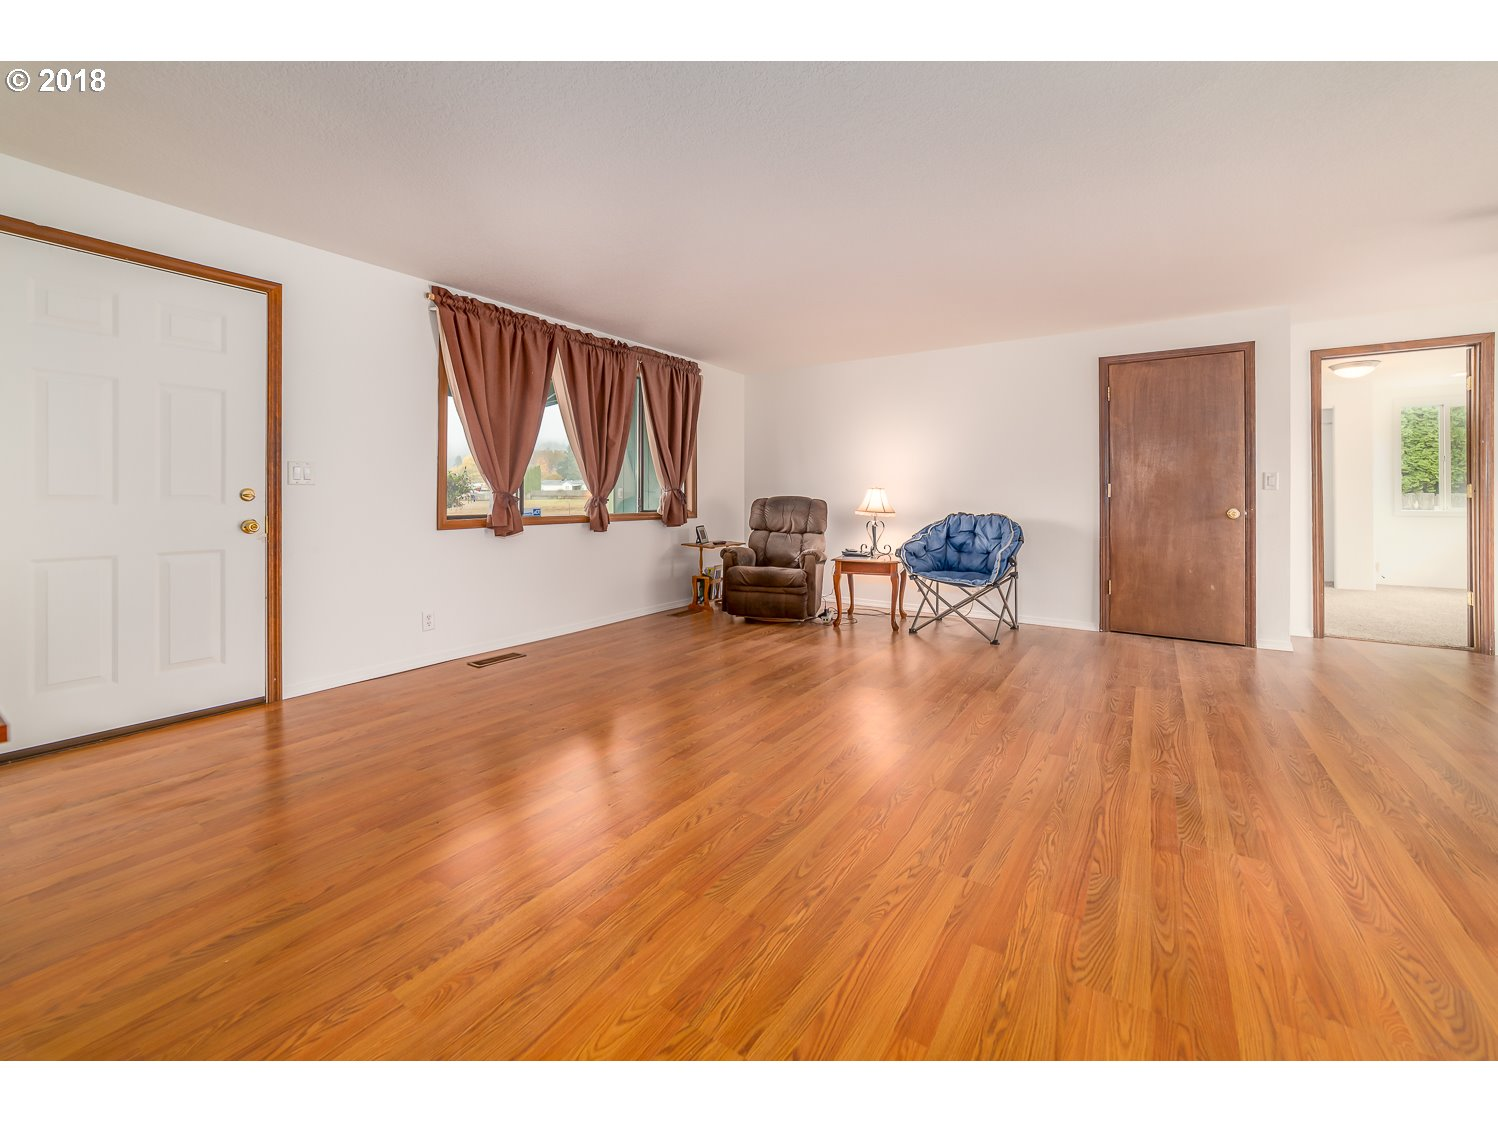 1131 N 16TH ST Cottage Grove, OR 97424 - MLS #: 18576456